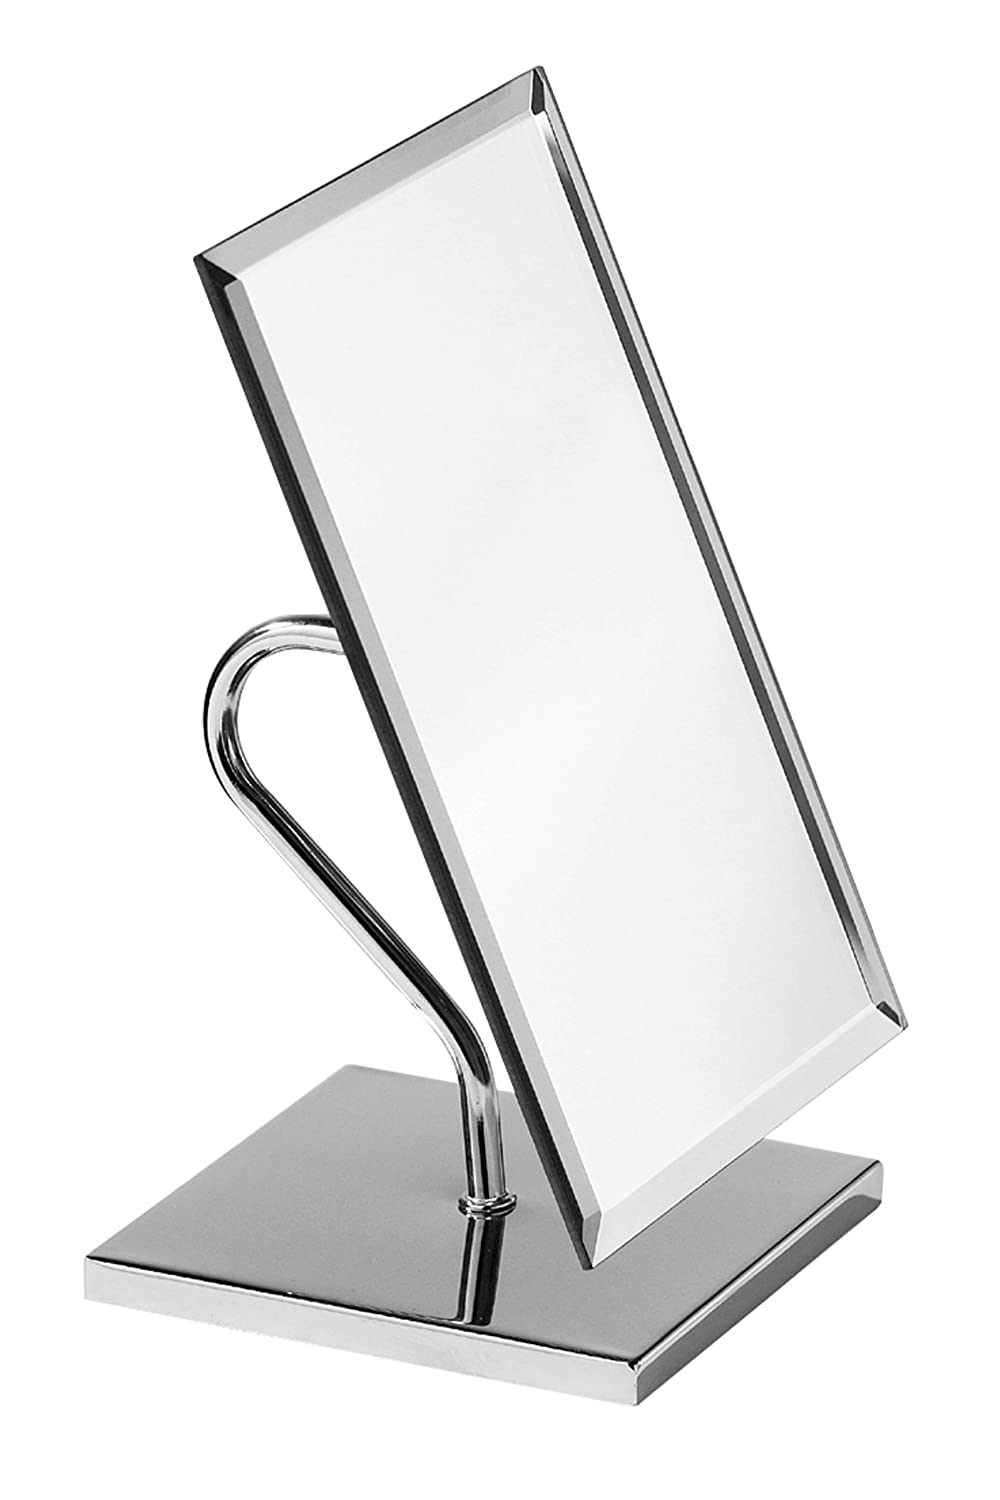 Premier Housewares Large Rectangle Free Standing Adjustable Mirror